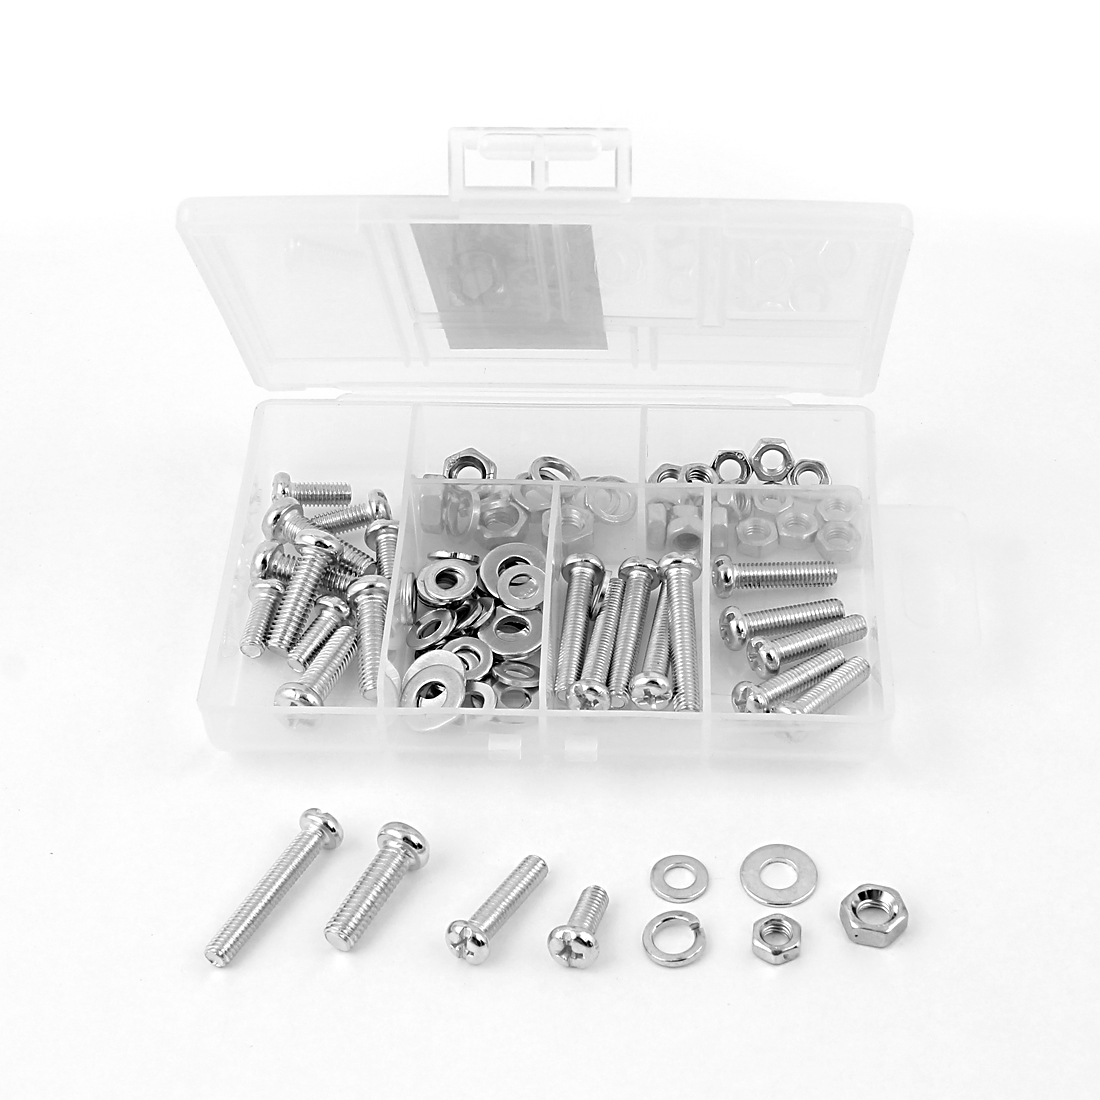 93 in 1 M5 M6 Silver Tone Metal Cross Oval Head Screw Bolt Nut Spring Flat Washer Set Kit Fasteners w Case